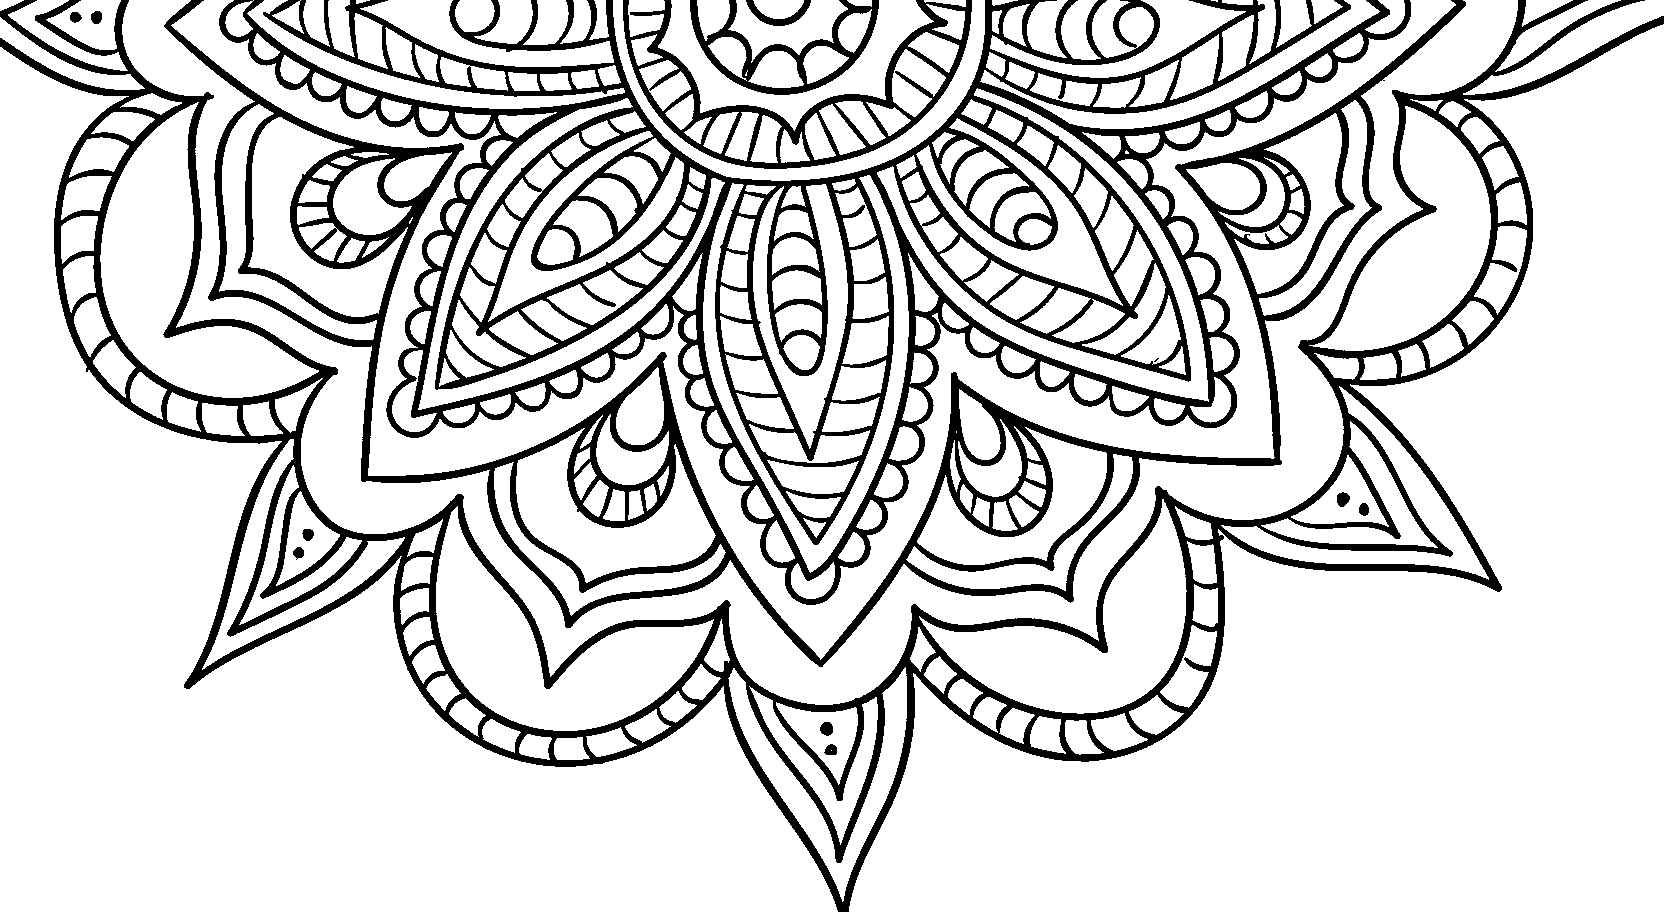 Coloring Book For Adults Website : Adult Coloring Pages Patterns Coloring Home